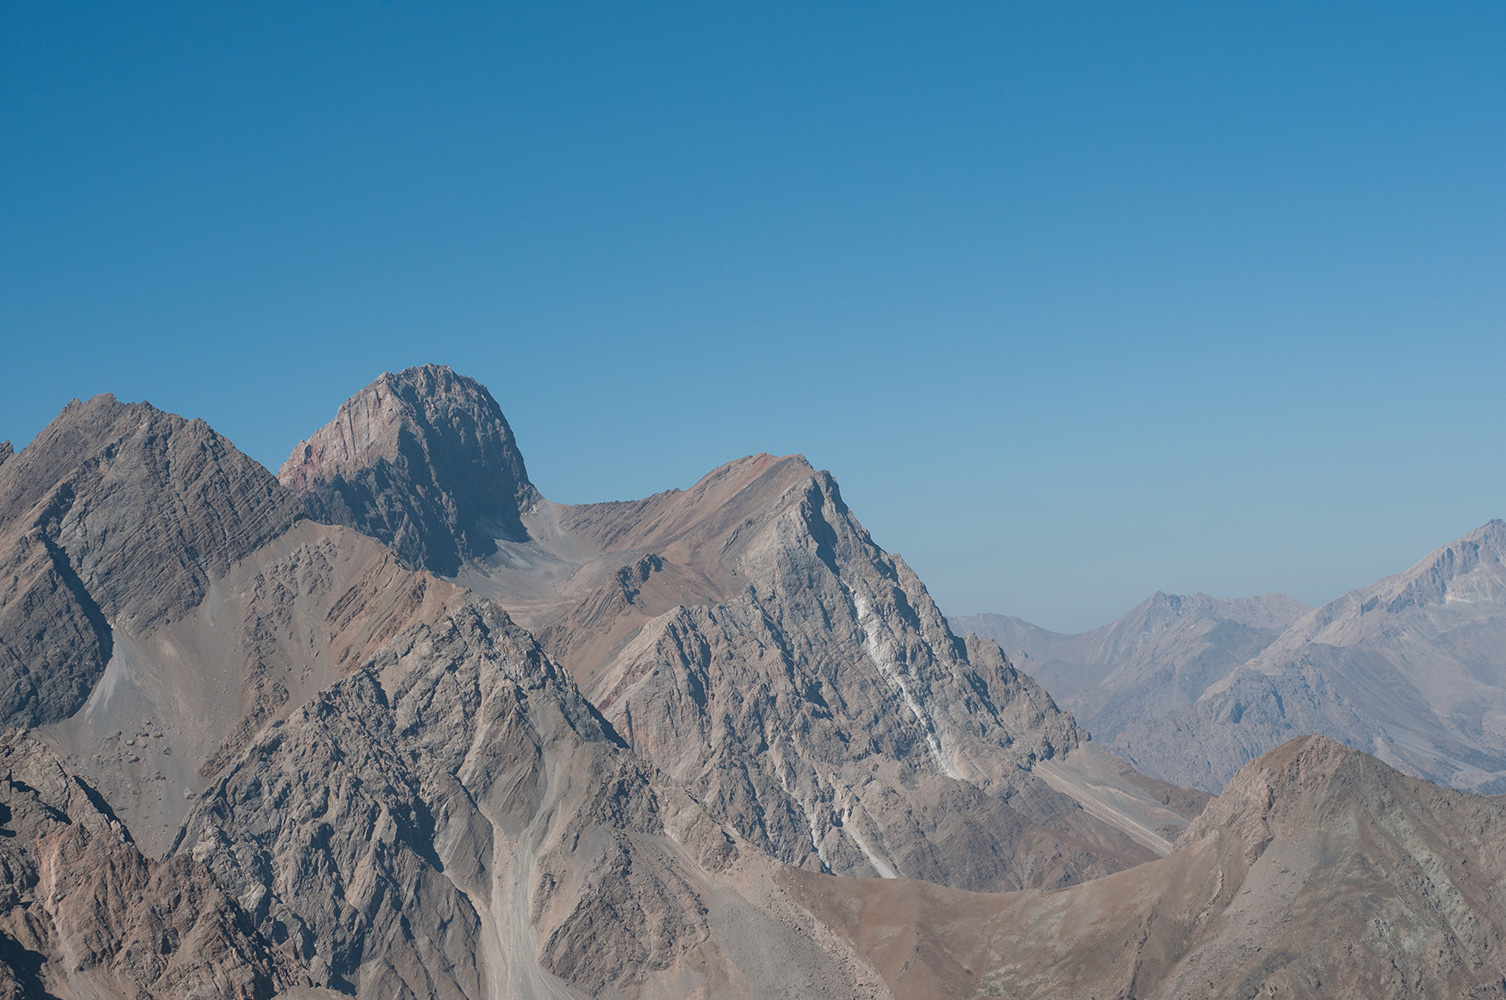 Telephoto from the Alaudin Pass